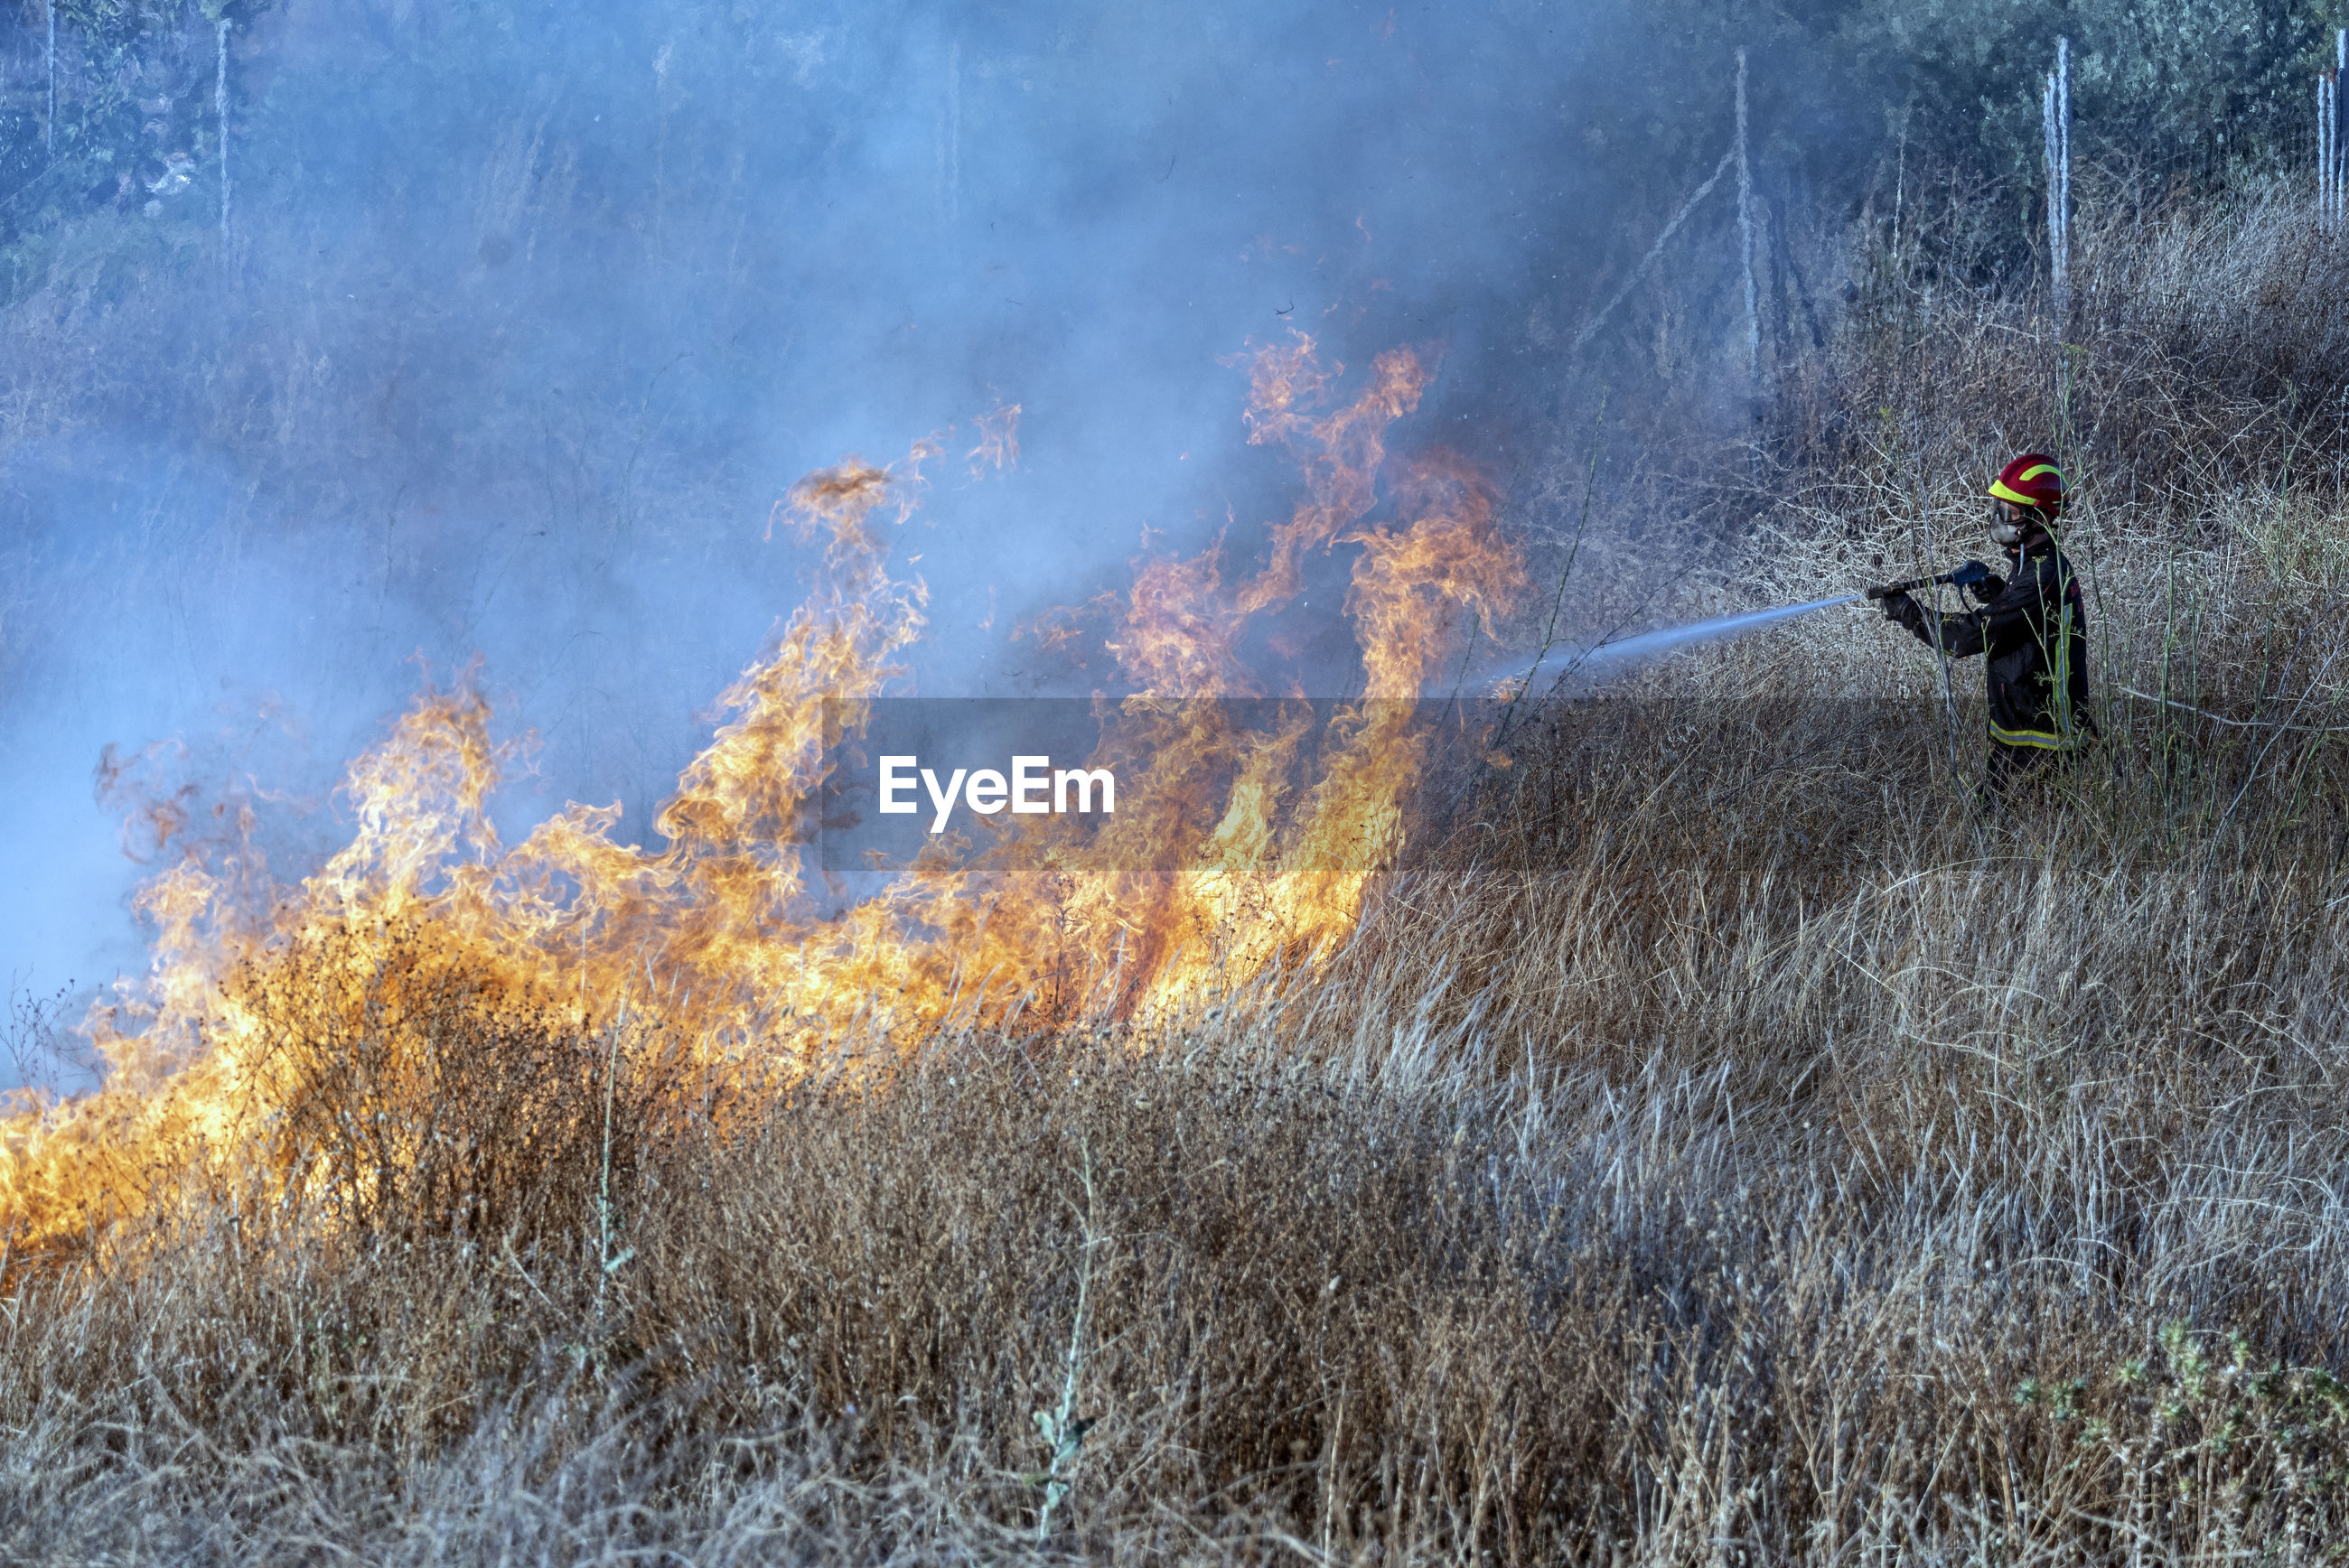 PANORAMIC VIEW OF FIRE CRACKERS ON LANDSCAPE